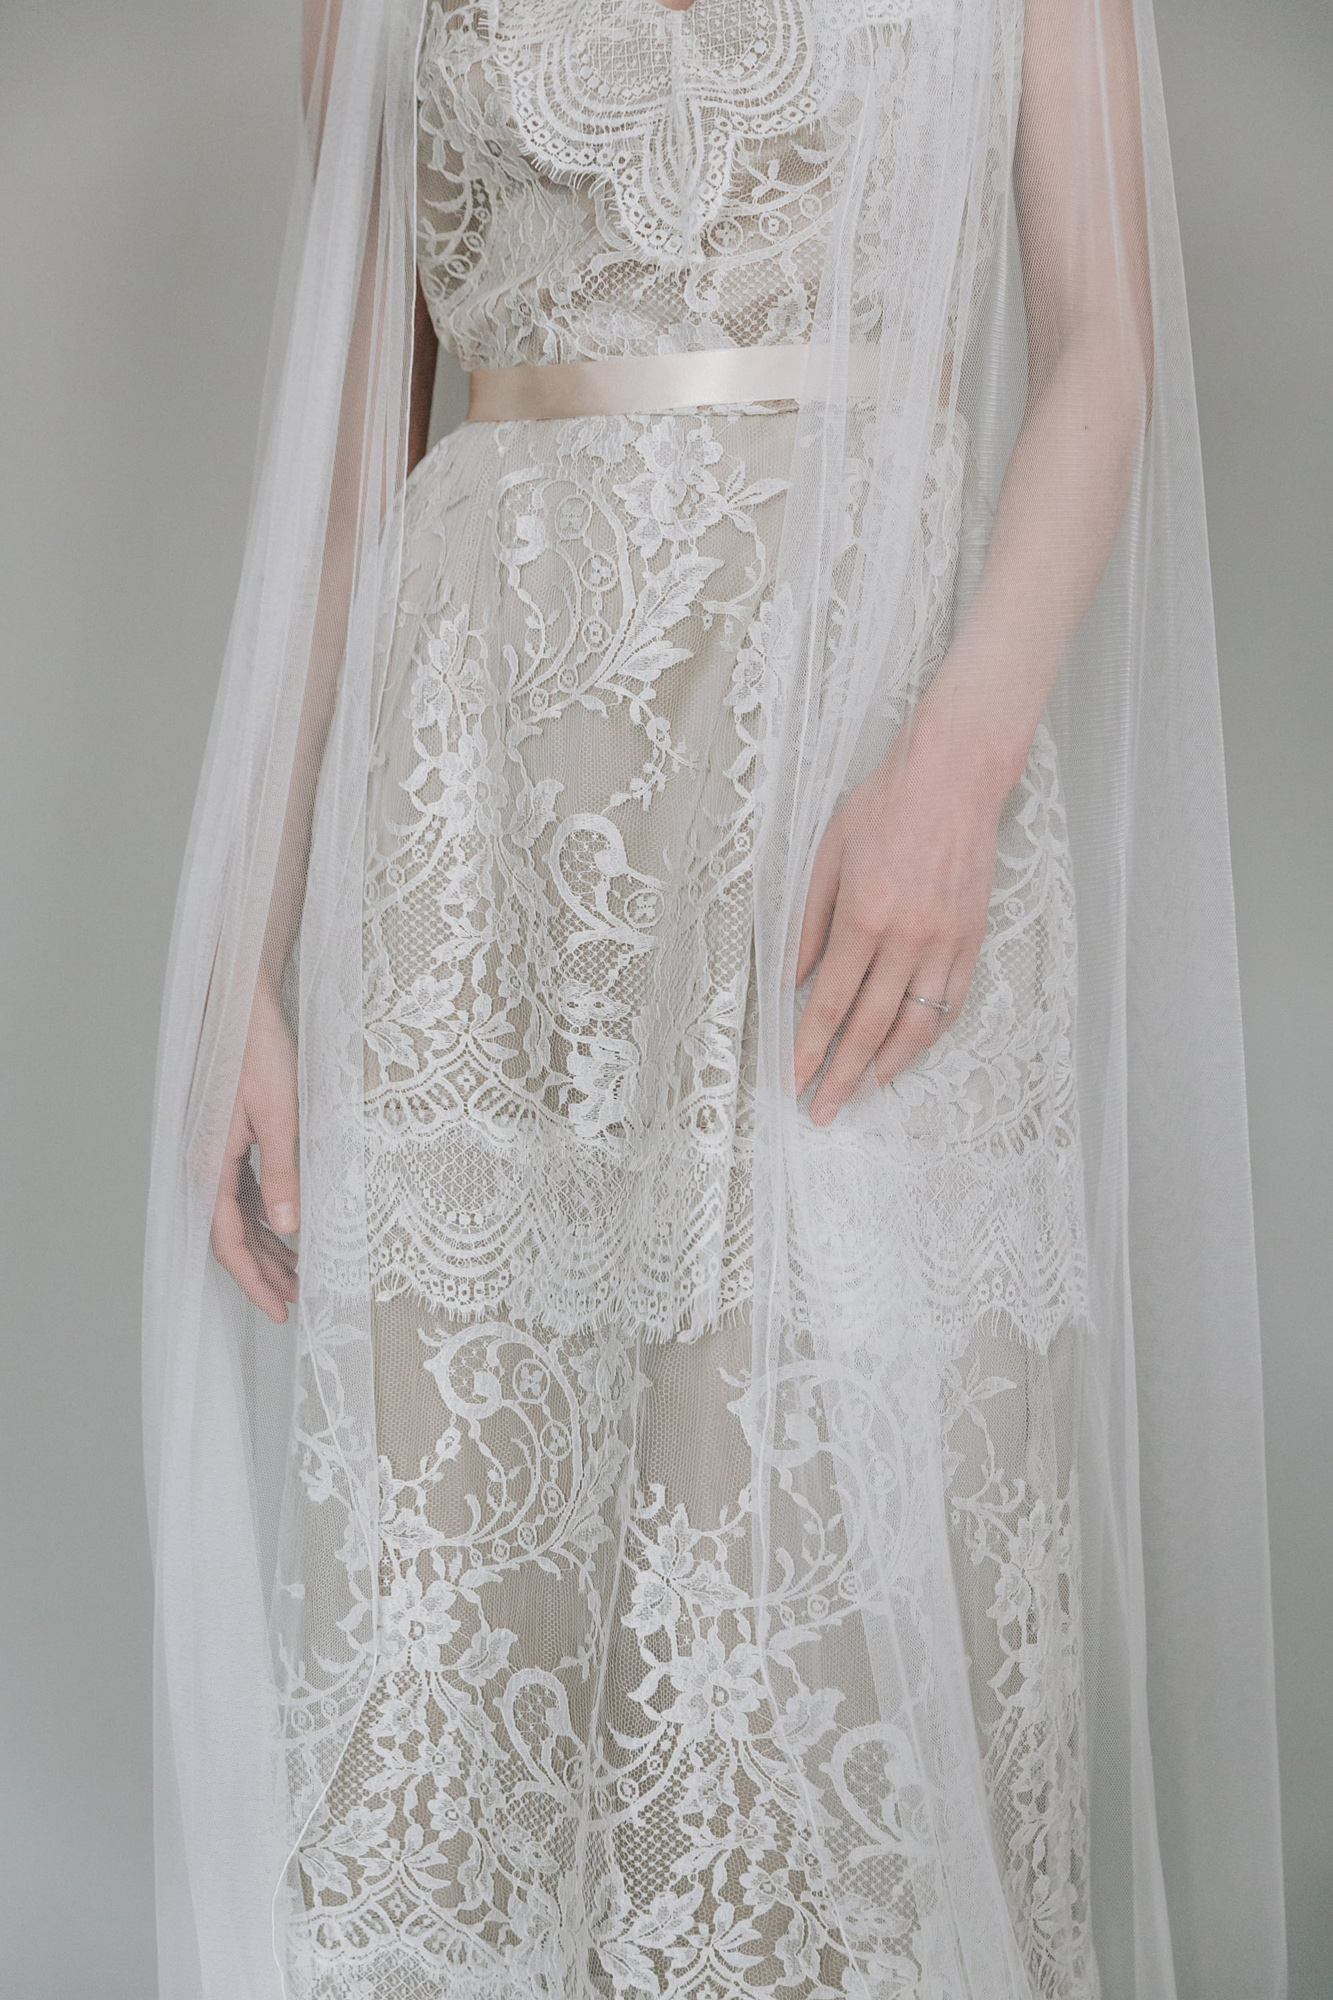 Kate-Beaumont-Sheffield-Wild-Lupin-Bohemian-Lace-Wedding-Gown-Tiered-Skirt-13.jpg